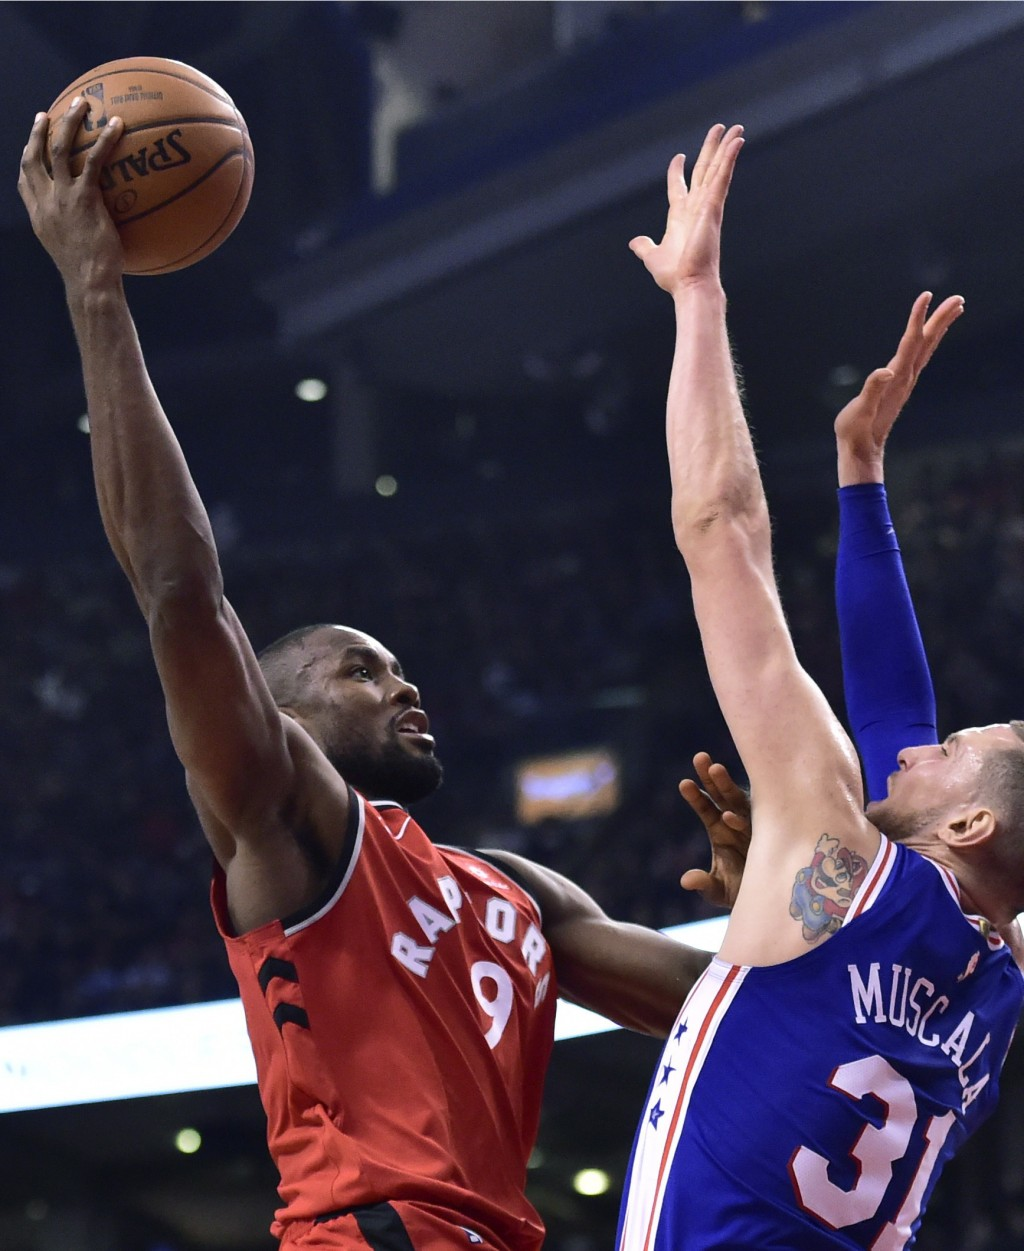 Toronto Raptors forward Serge Ibaka (9) shoots over Philadelphia 76ers forward Mike Muscala (31) during the first half of an NBA basketball game, Wedn